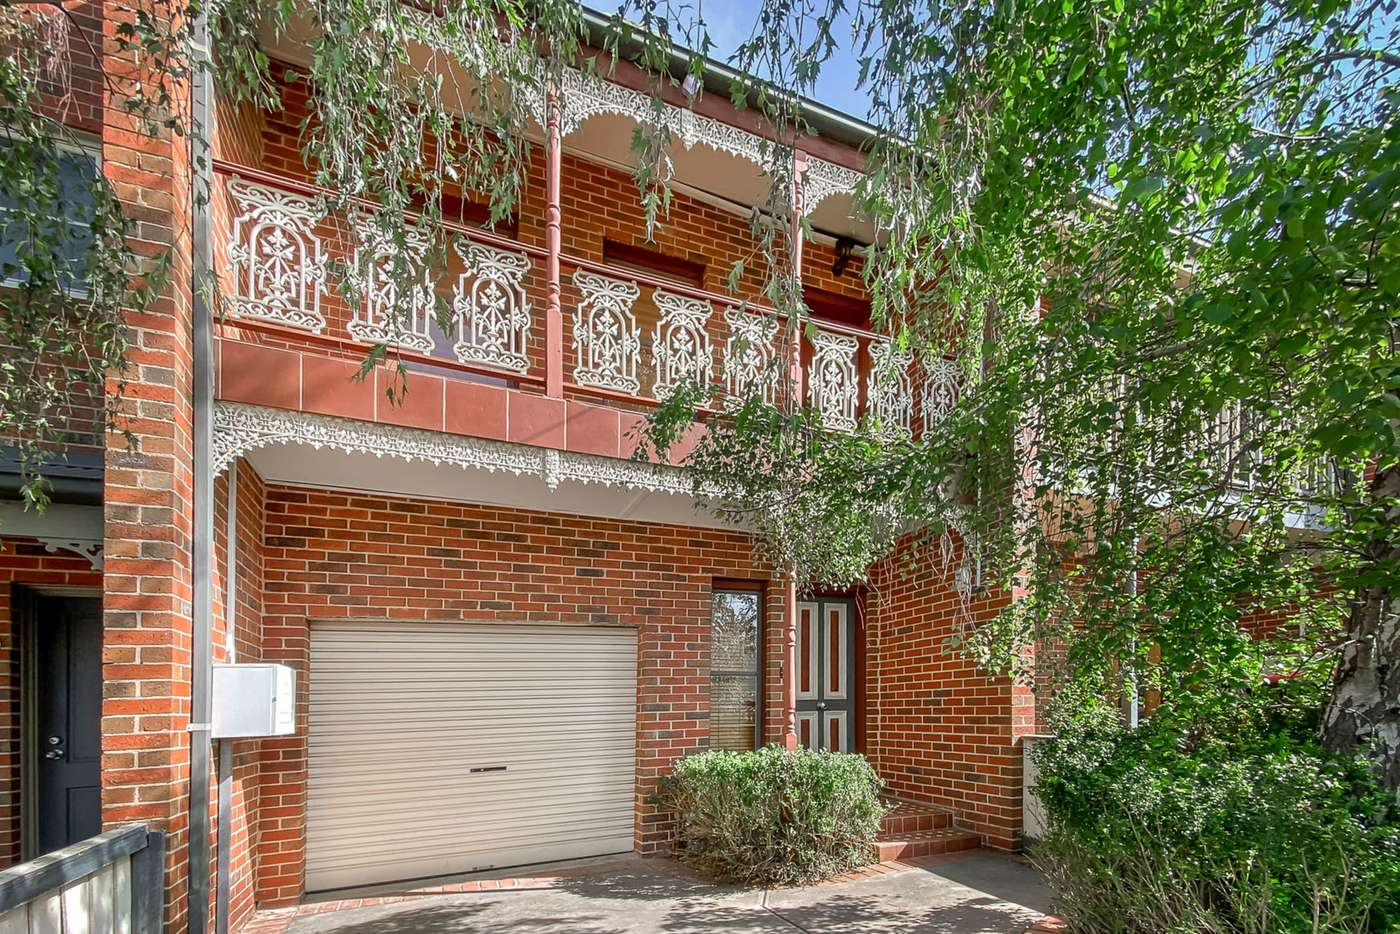 Main view of Homely house listing, 81 Leicester Street, Preston VIC 3072